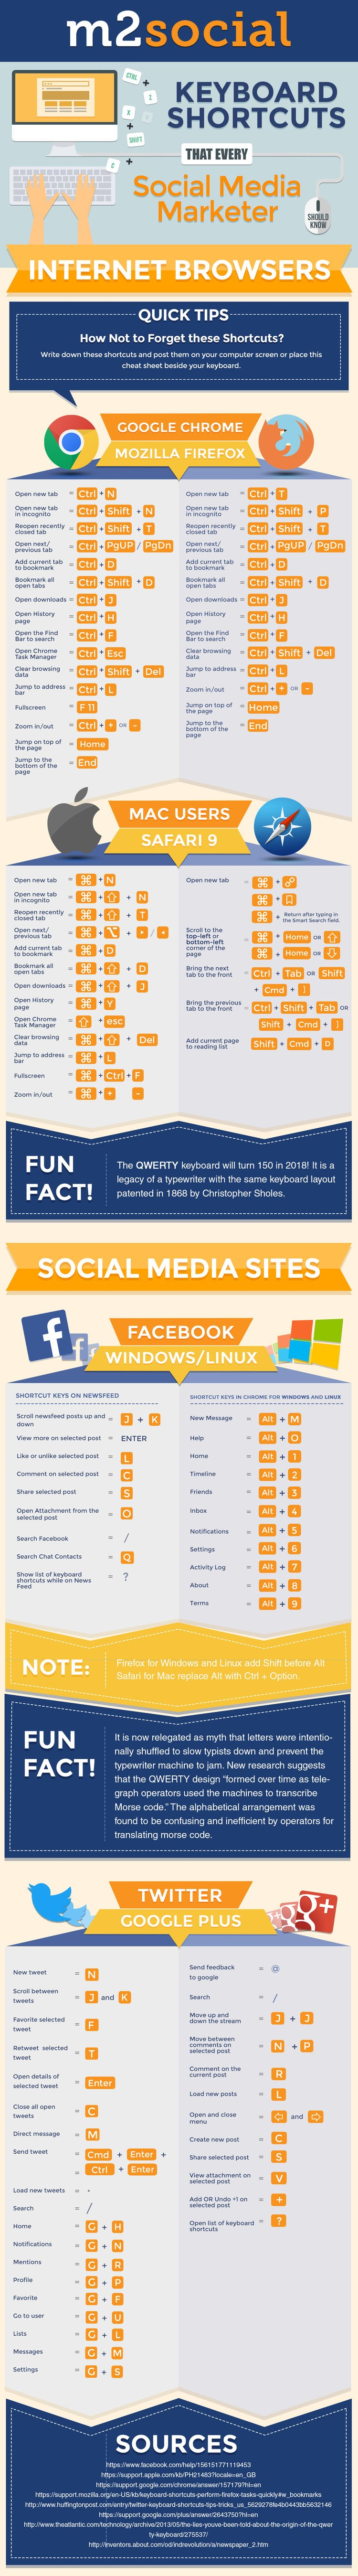 Keyboard Shortcuts that Every Social Media Marketer Should Know - #infographic